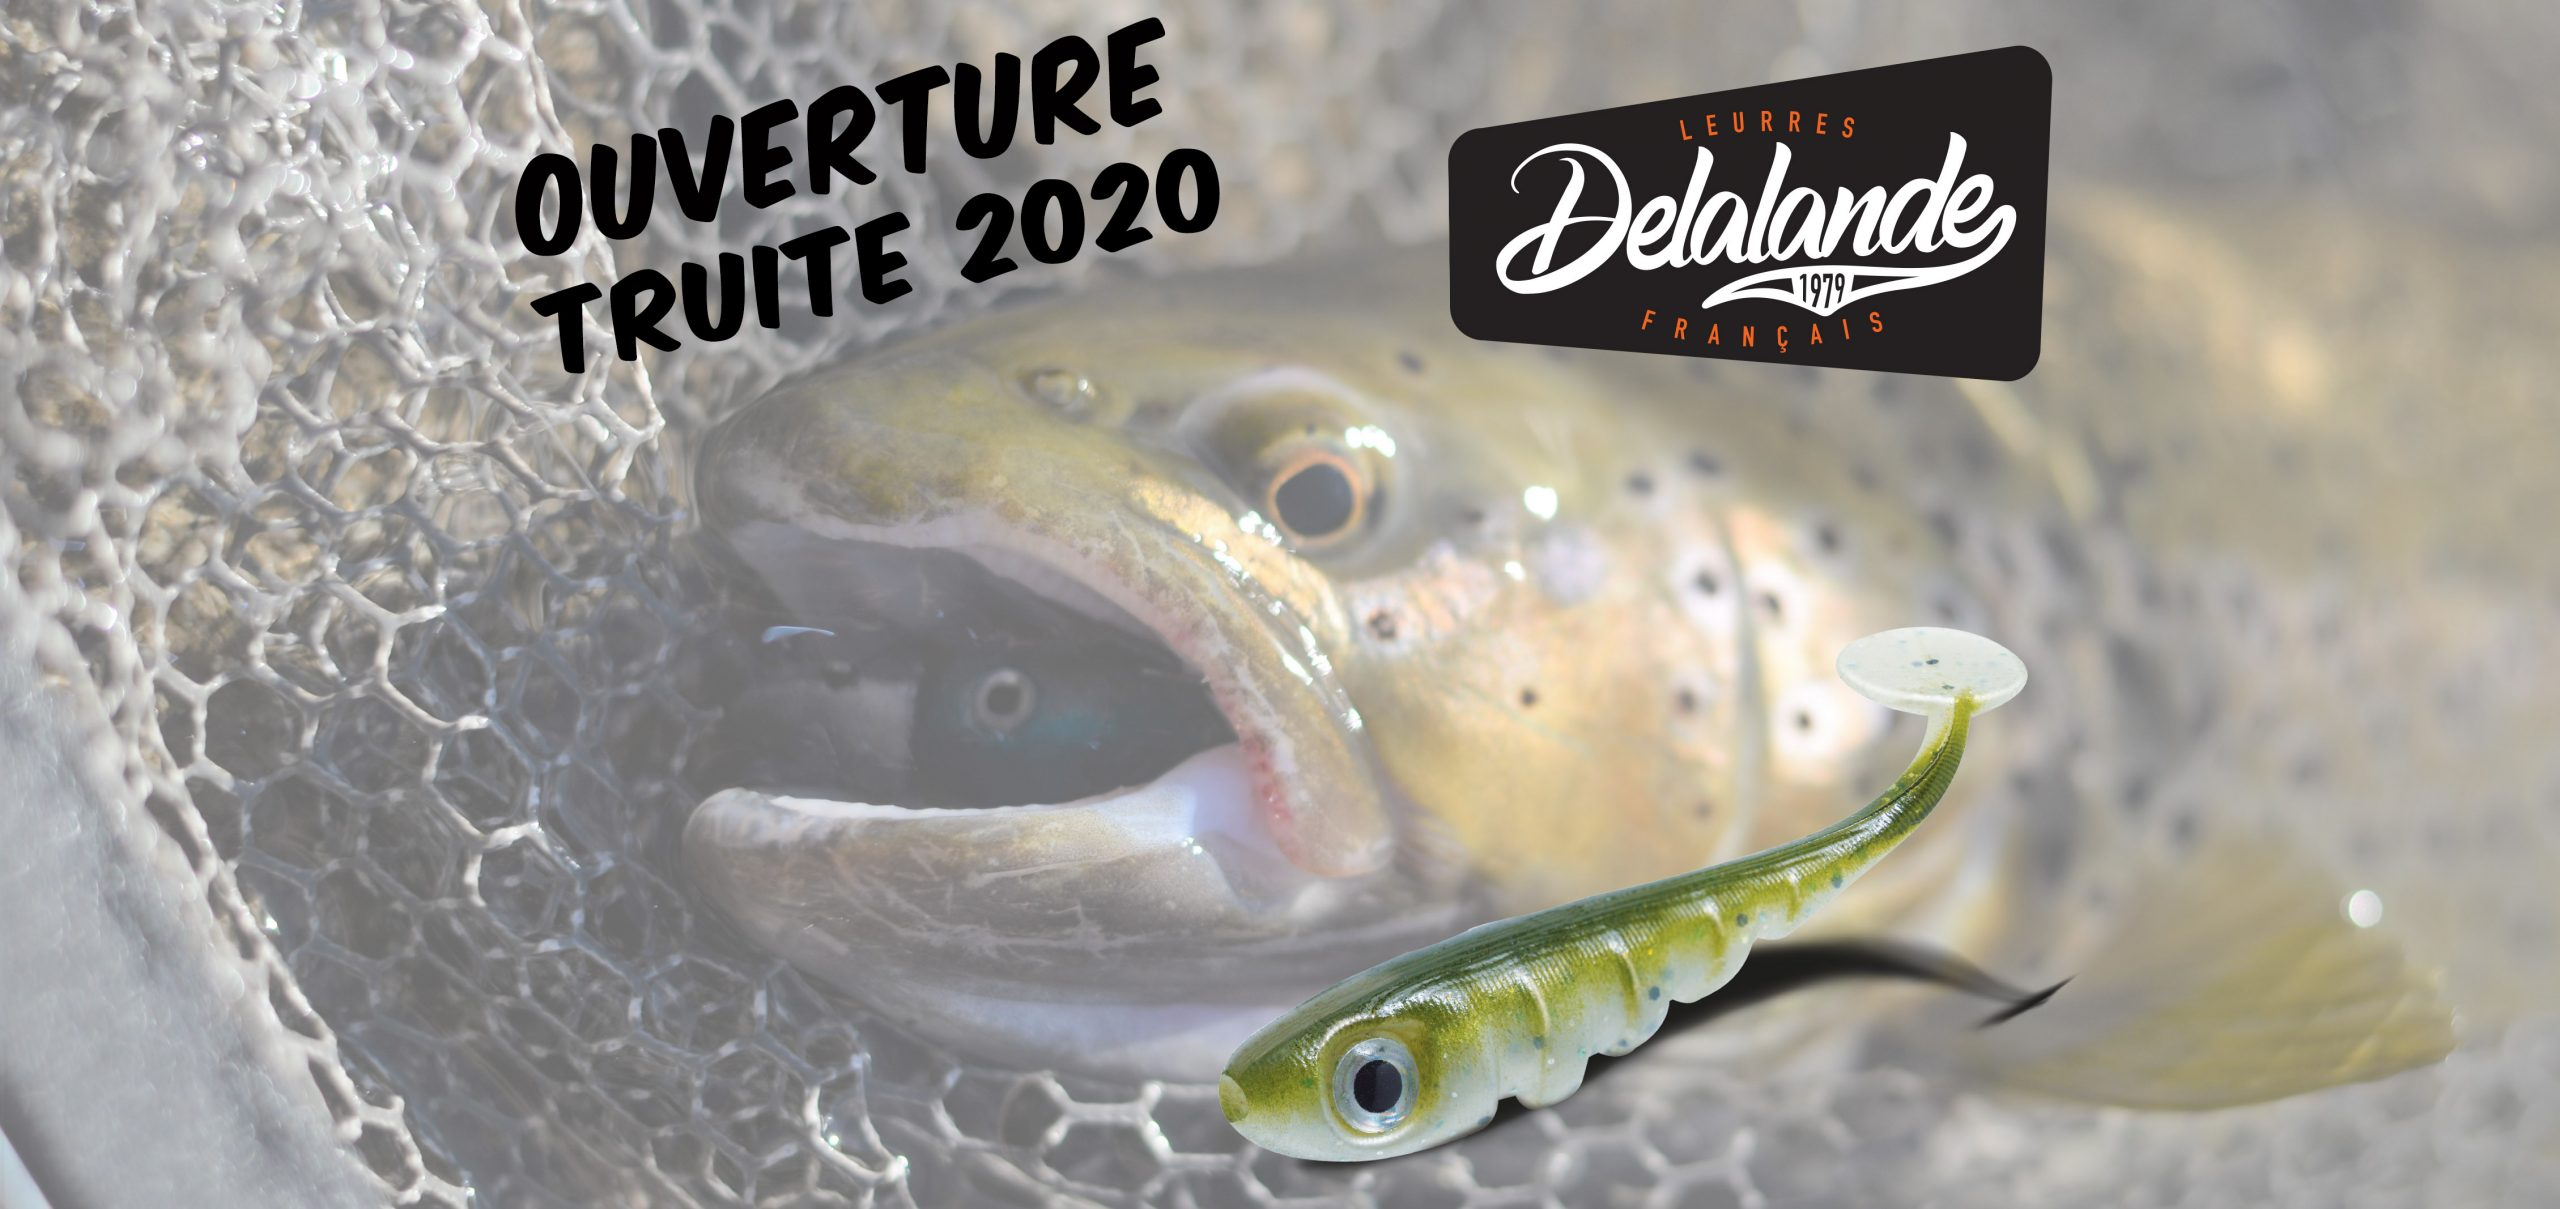 Ouverture Truite 2020 : Touptishad